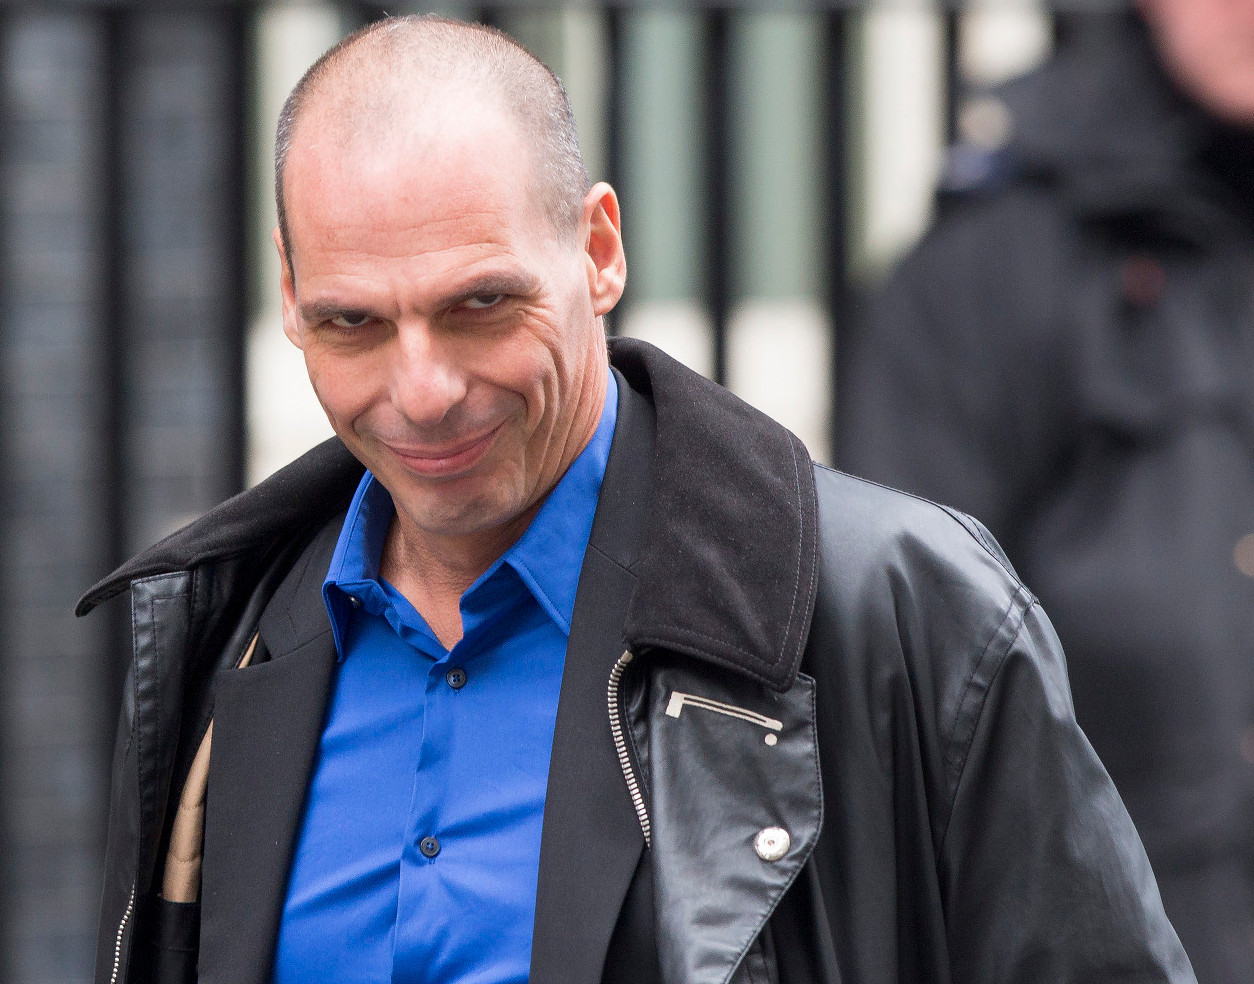 Parties call for explanations from the government for the 'hacking' of Varoufakis